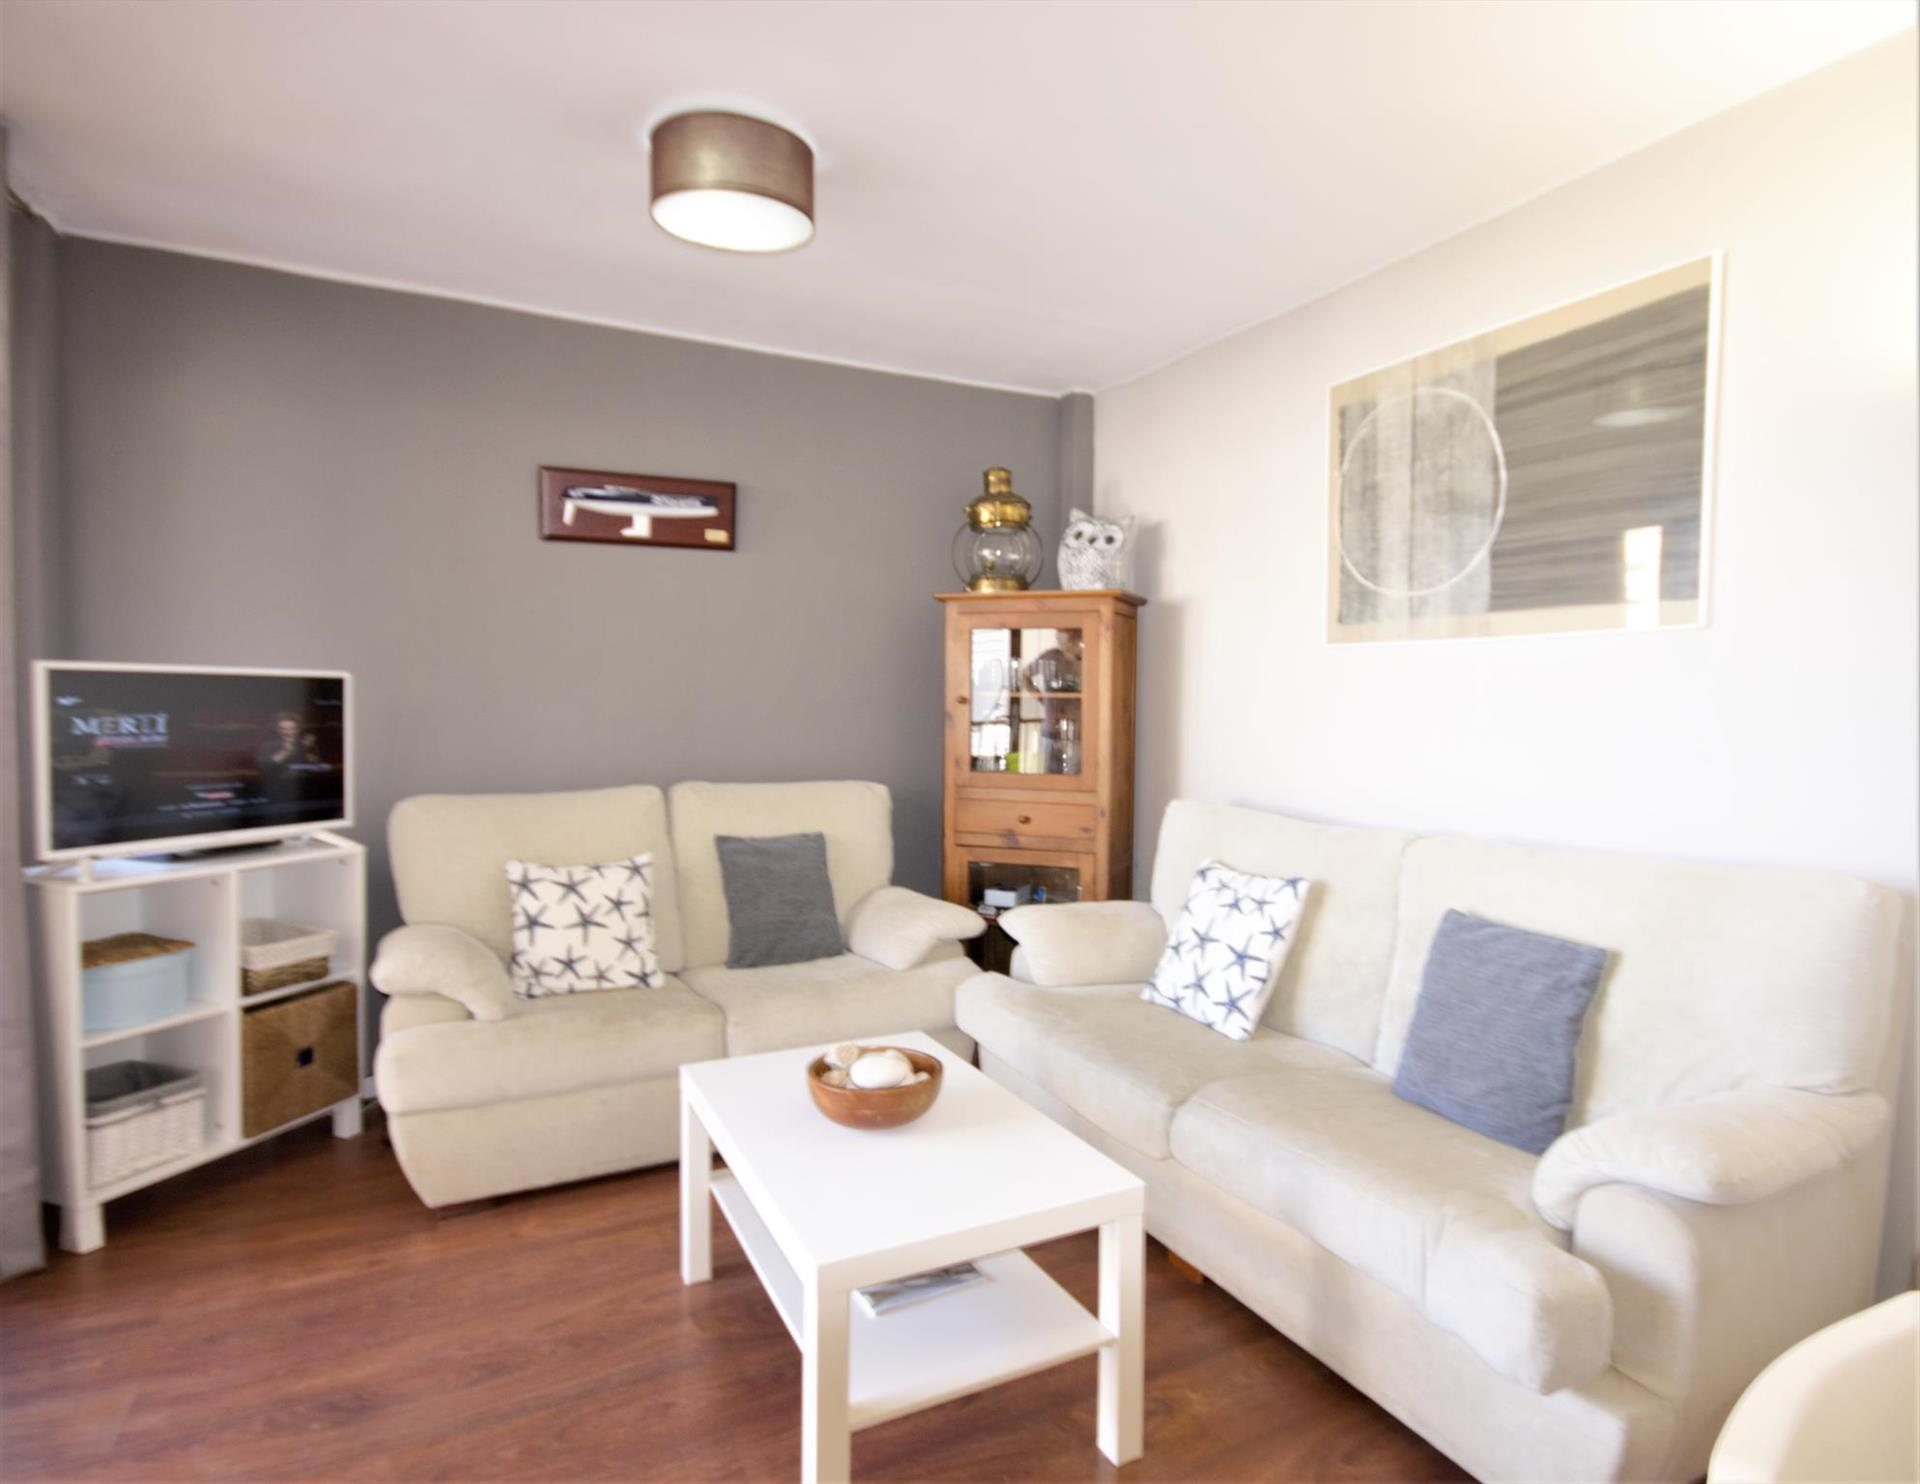 LA NORIA,Wonderful and nice apartment in Javea, on the Costa Blanca, Spain for 6 persons.....